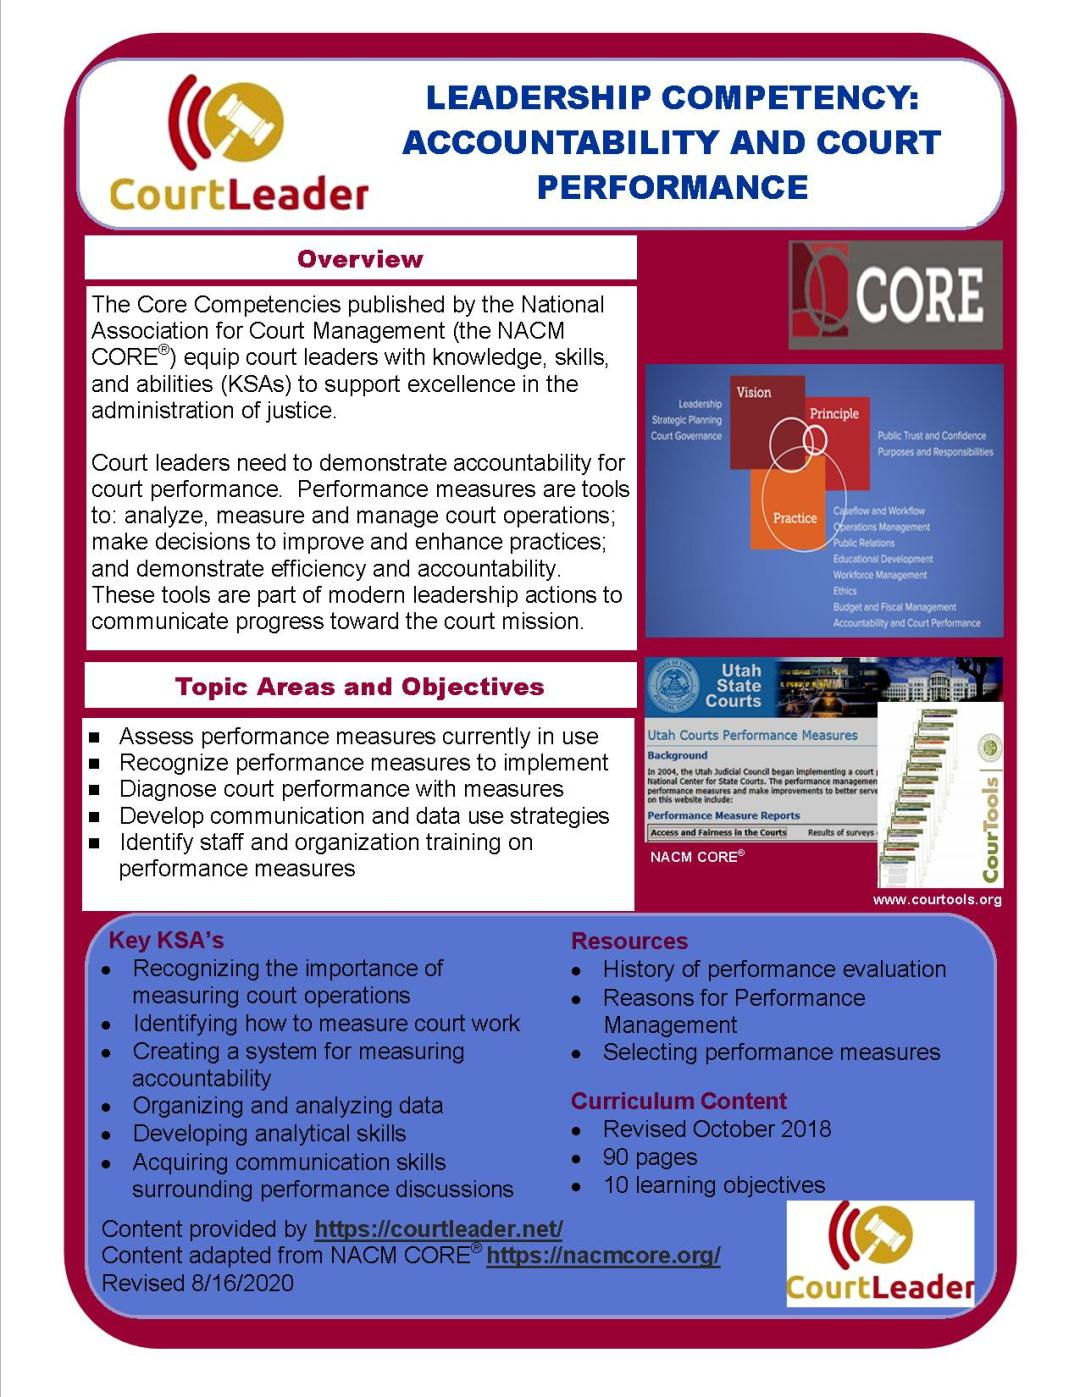 Court Leader Core Summary - Accountability and Court Performance rev 8-16-20